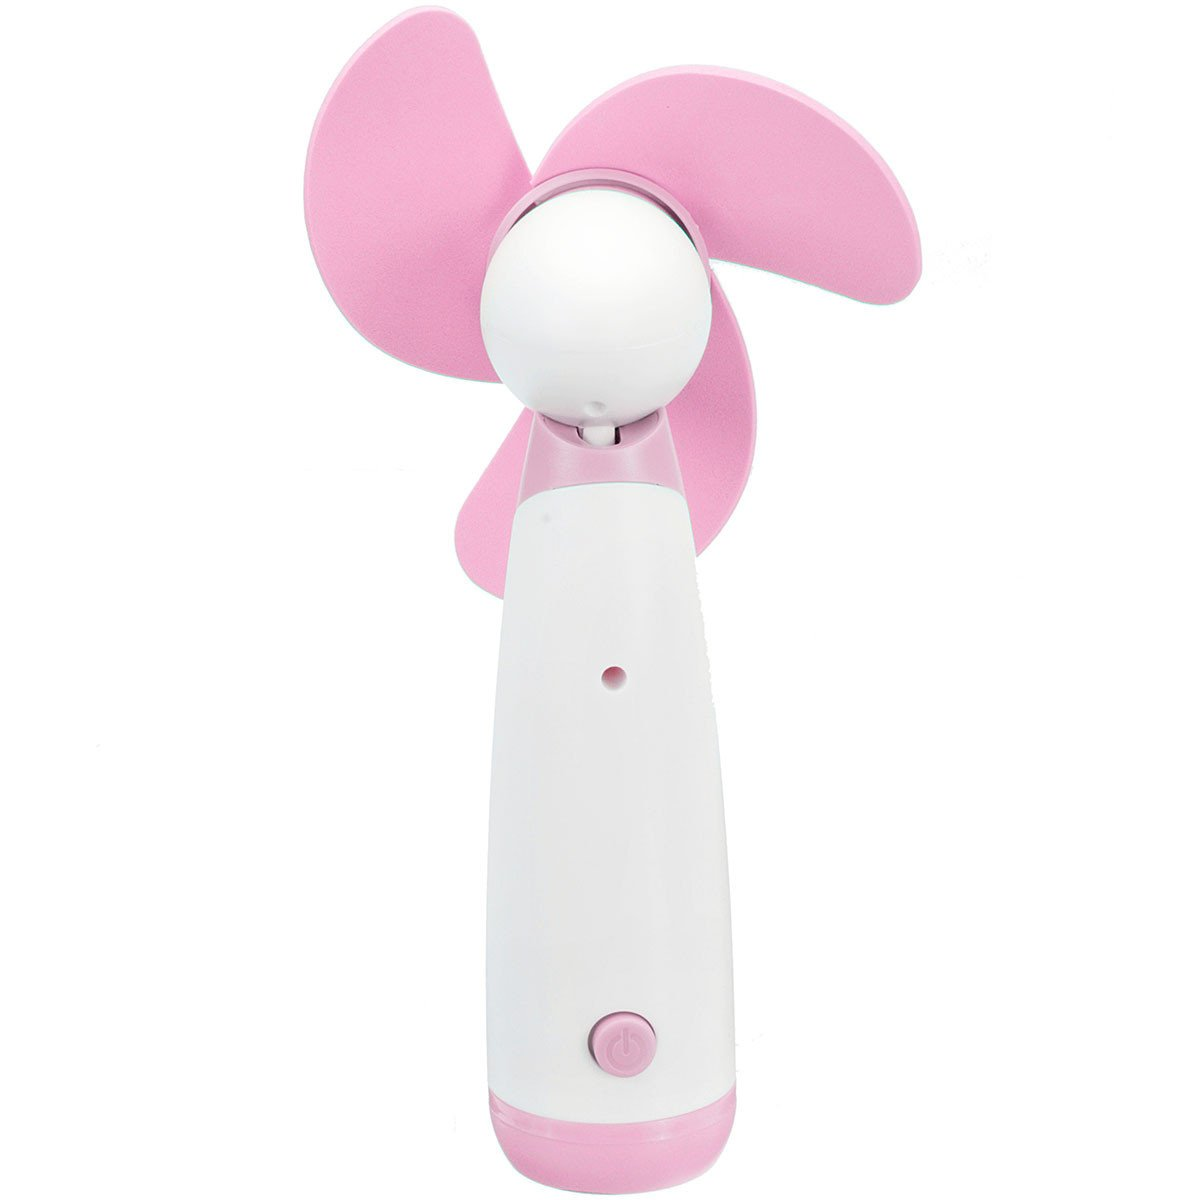 SAFETYON Handheld Ventilator Mini Standventilator Super Mute Fan Personal Portable Electric Cooling Fan for Home and Travel Battery Operated pink